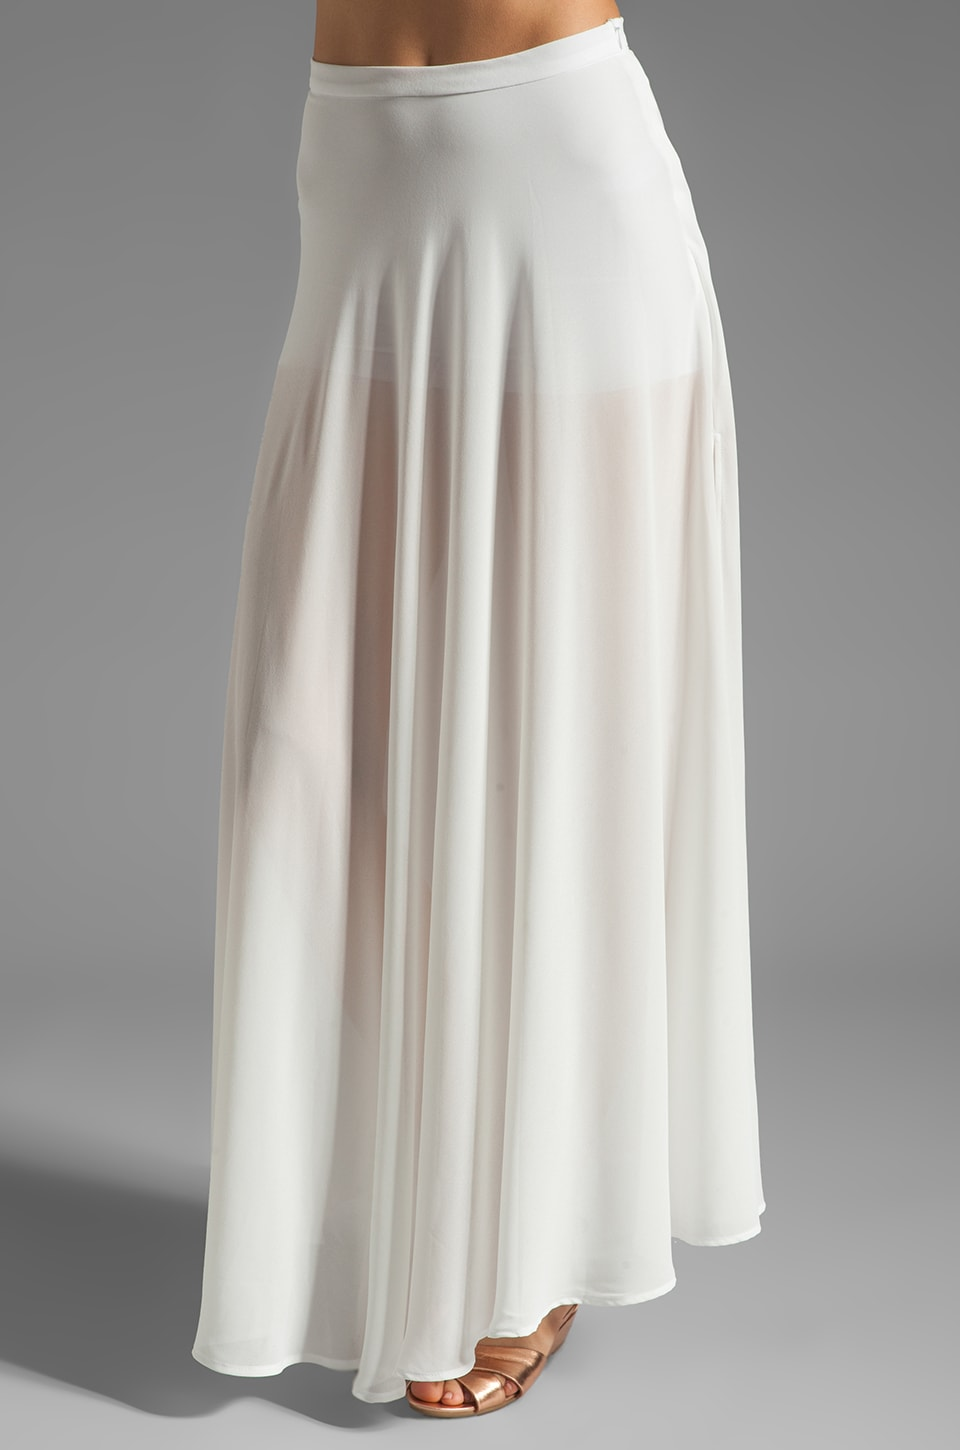 Boulee Floriana Skirt in Off White